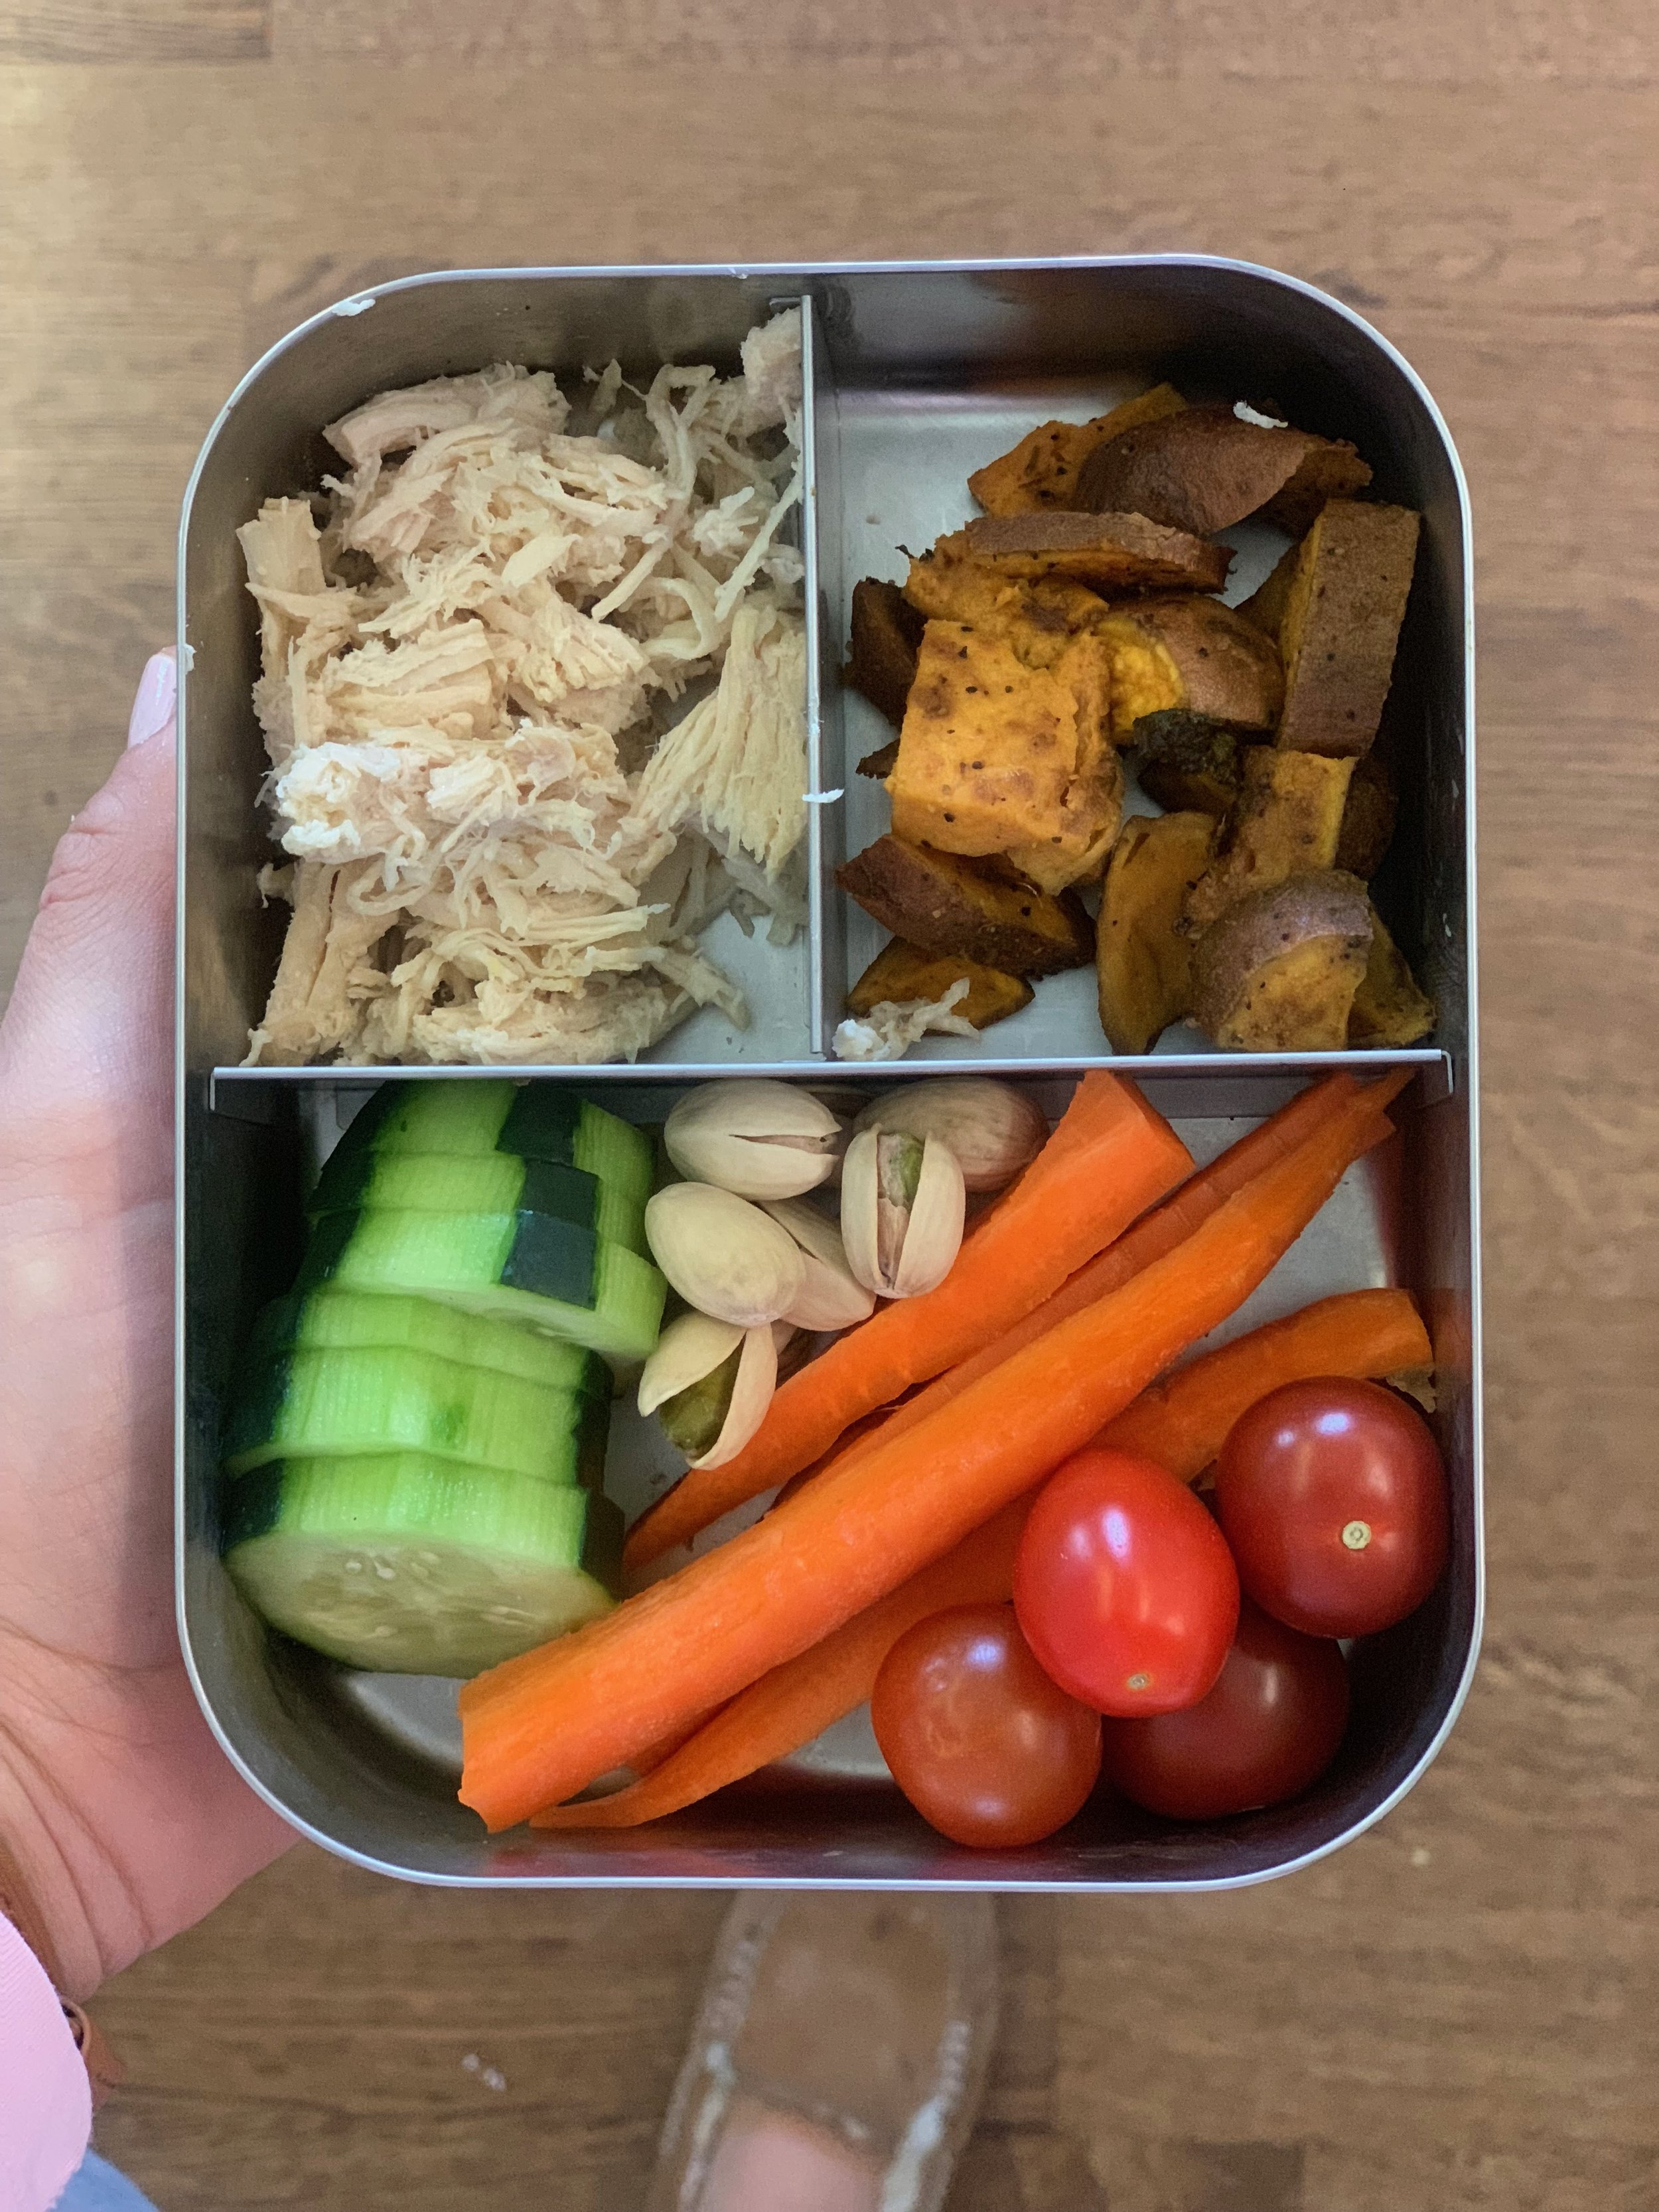 Bottom: Cucumbers, pistachios, carrots, tomatoes  Top left: shredded chicken  Top right: sweet potatoes